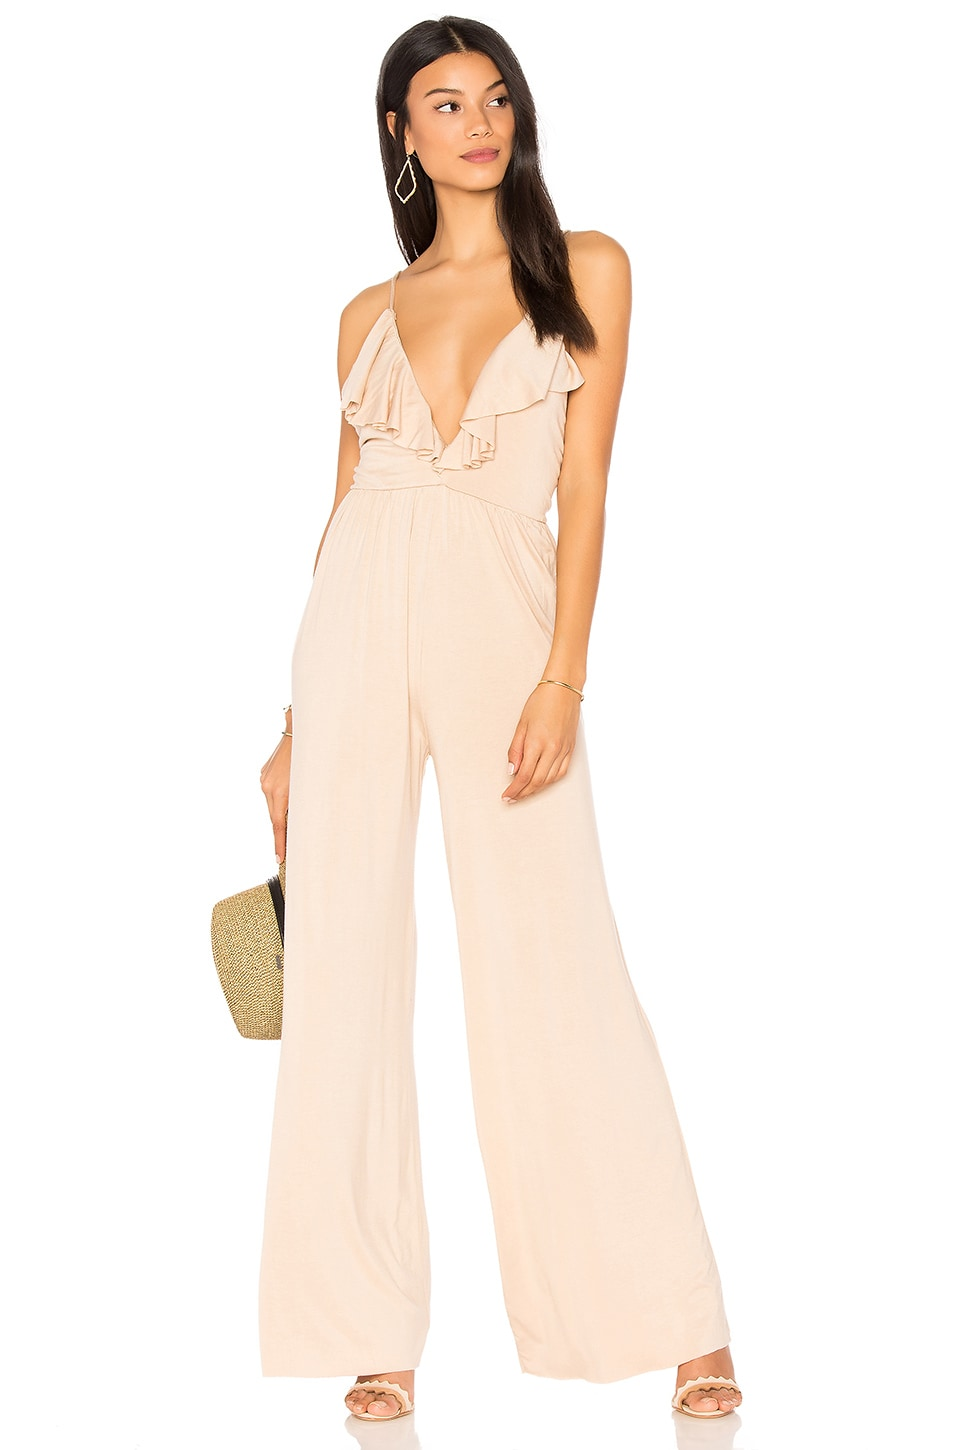 Clayton Sonja Jumpsuit in Bare